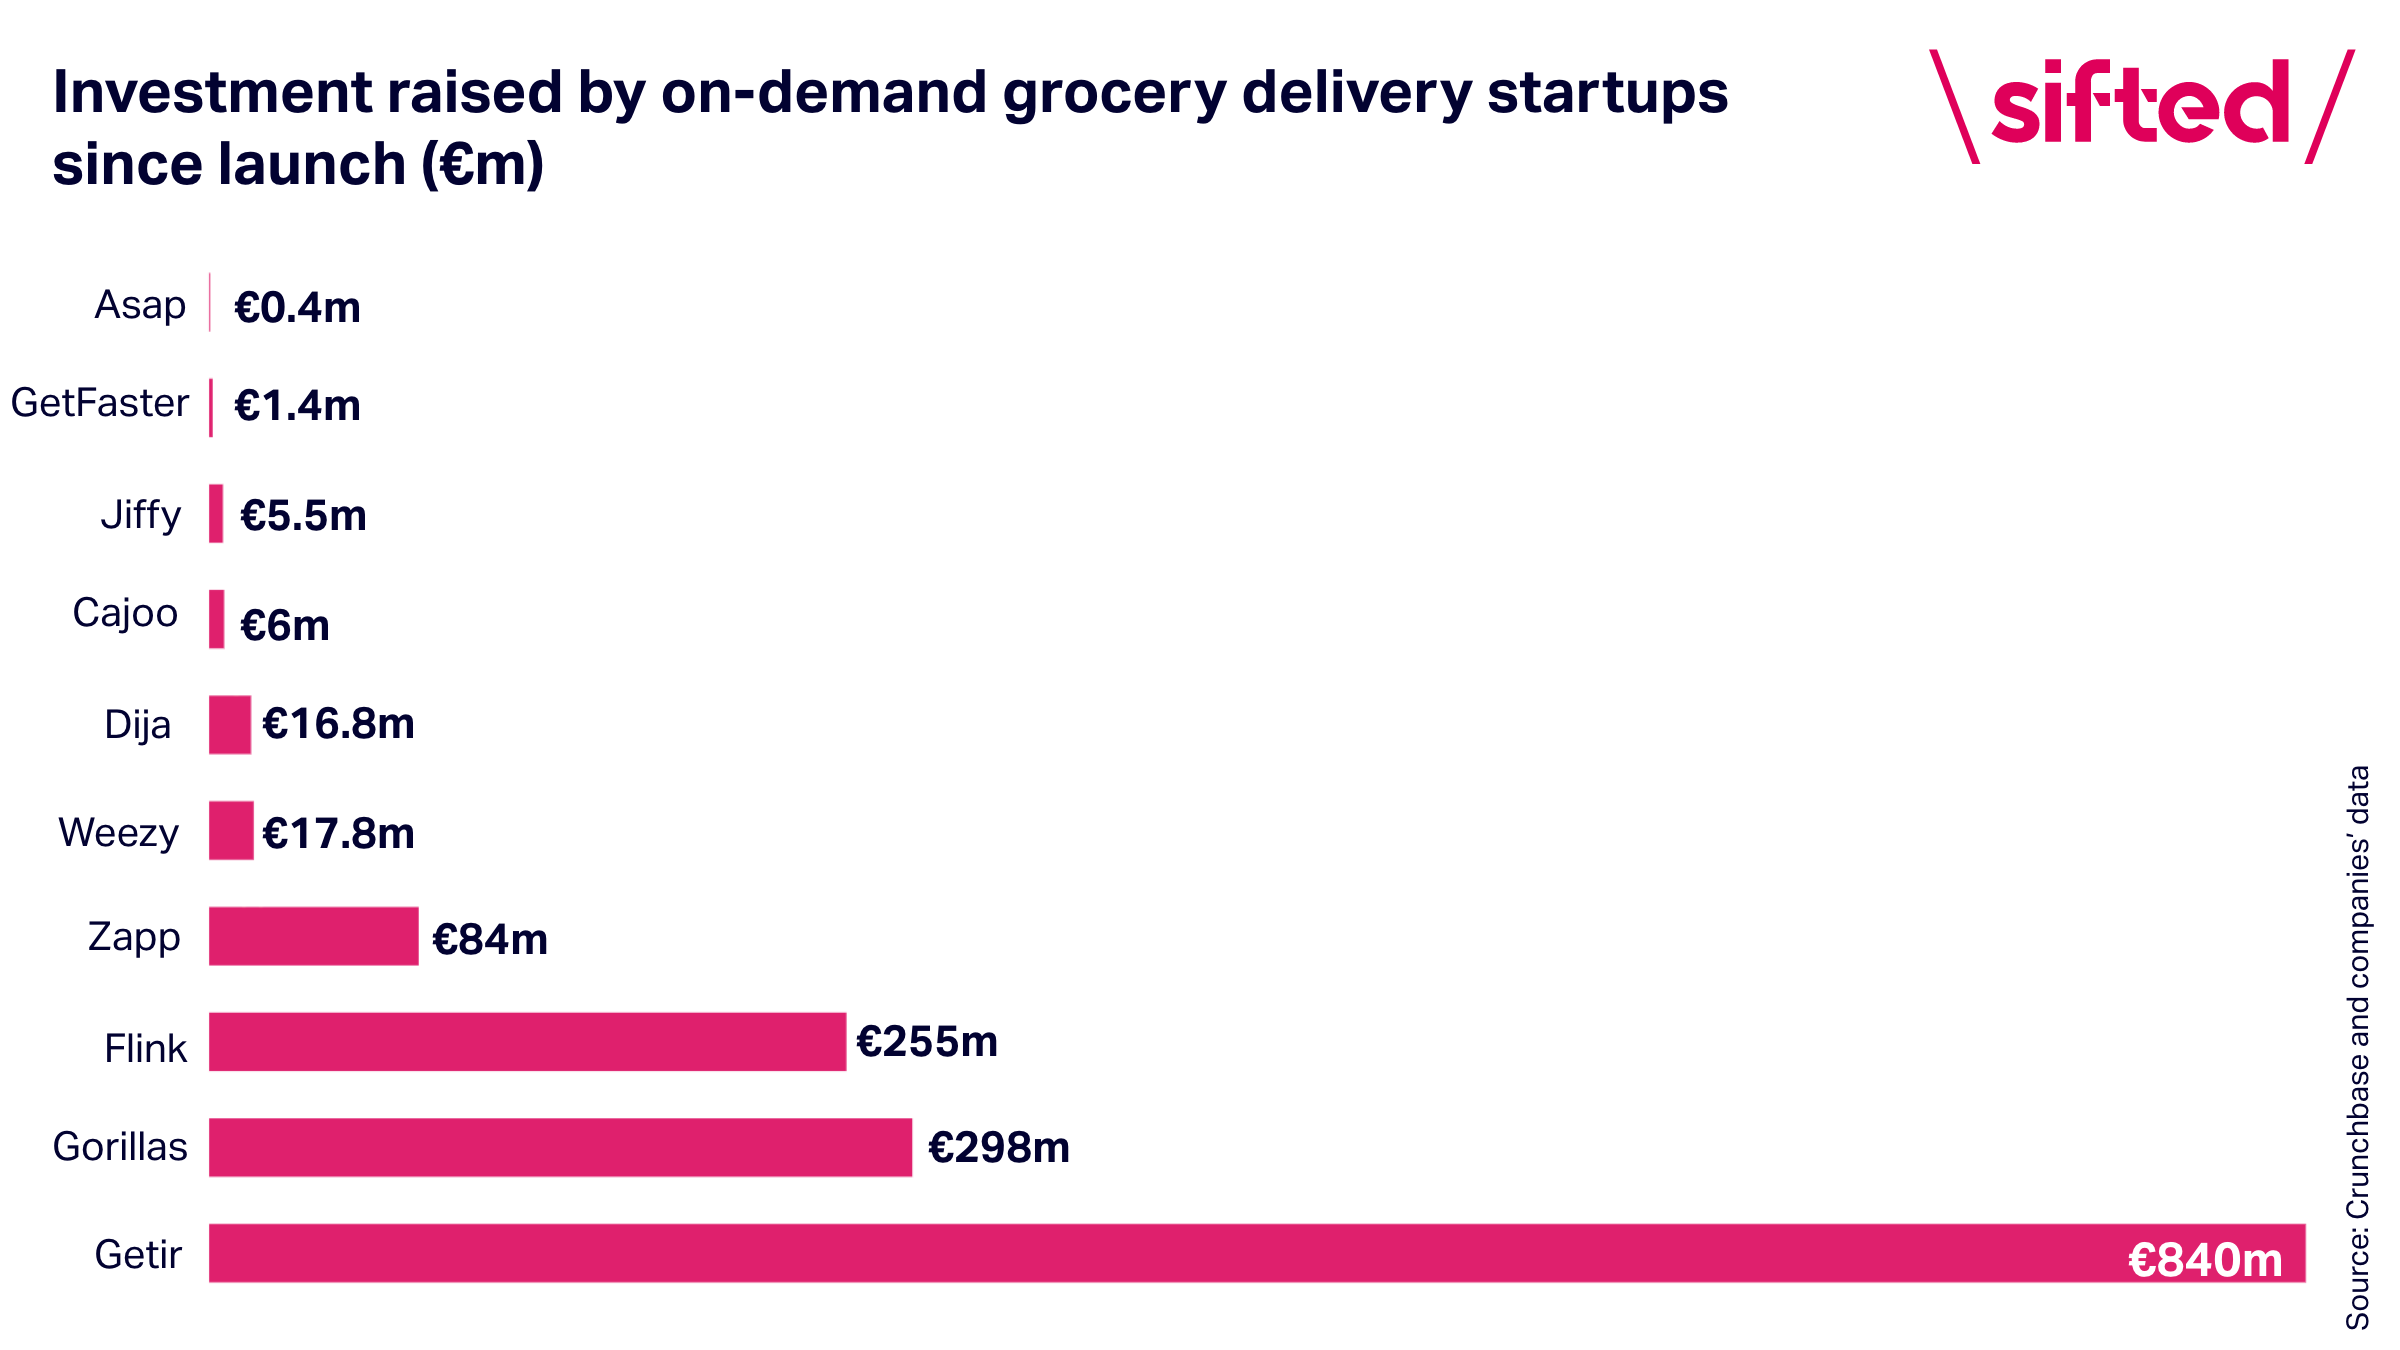 on-demand grocery funding rounds